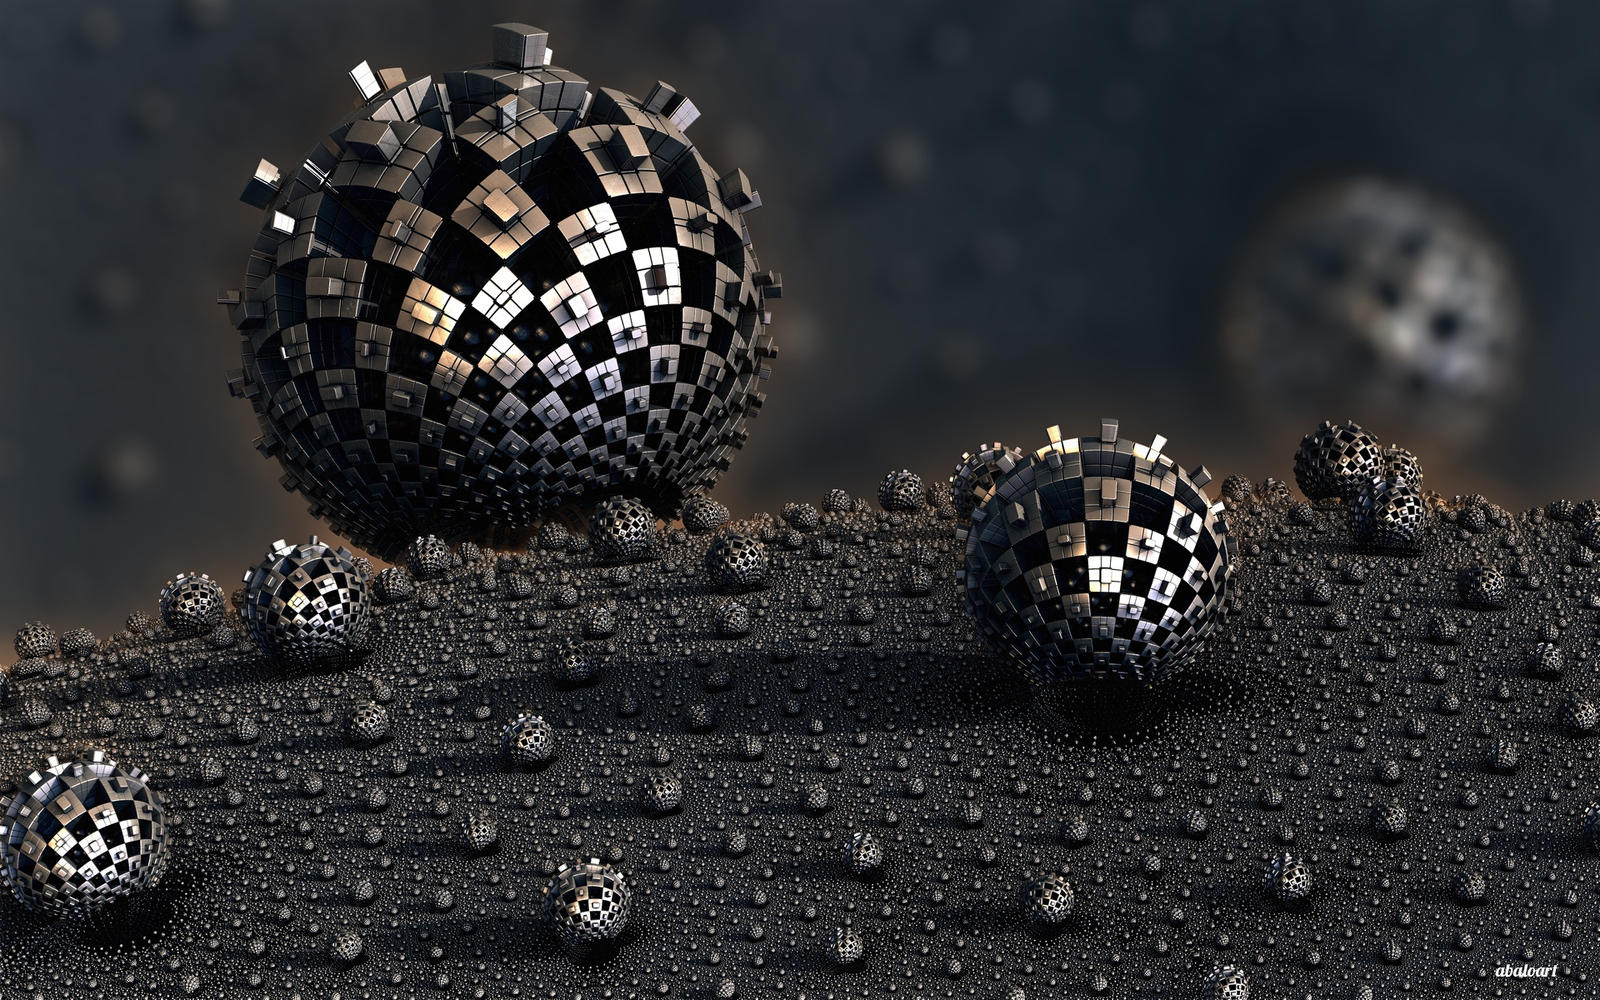 Mechanical Spheres by batjorge